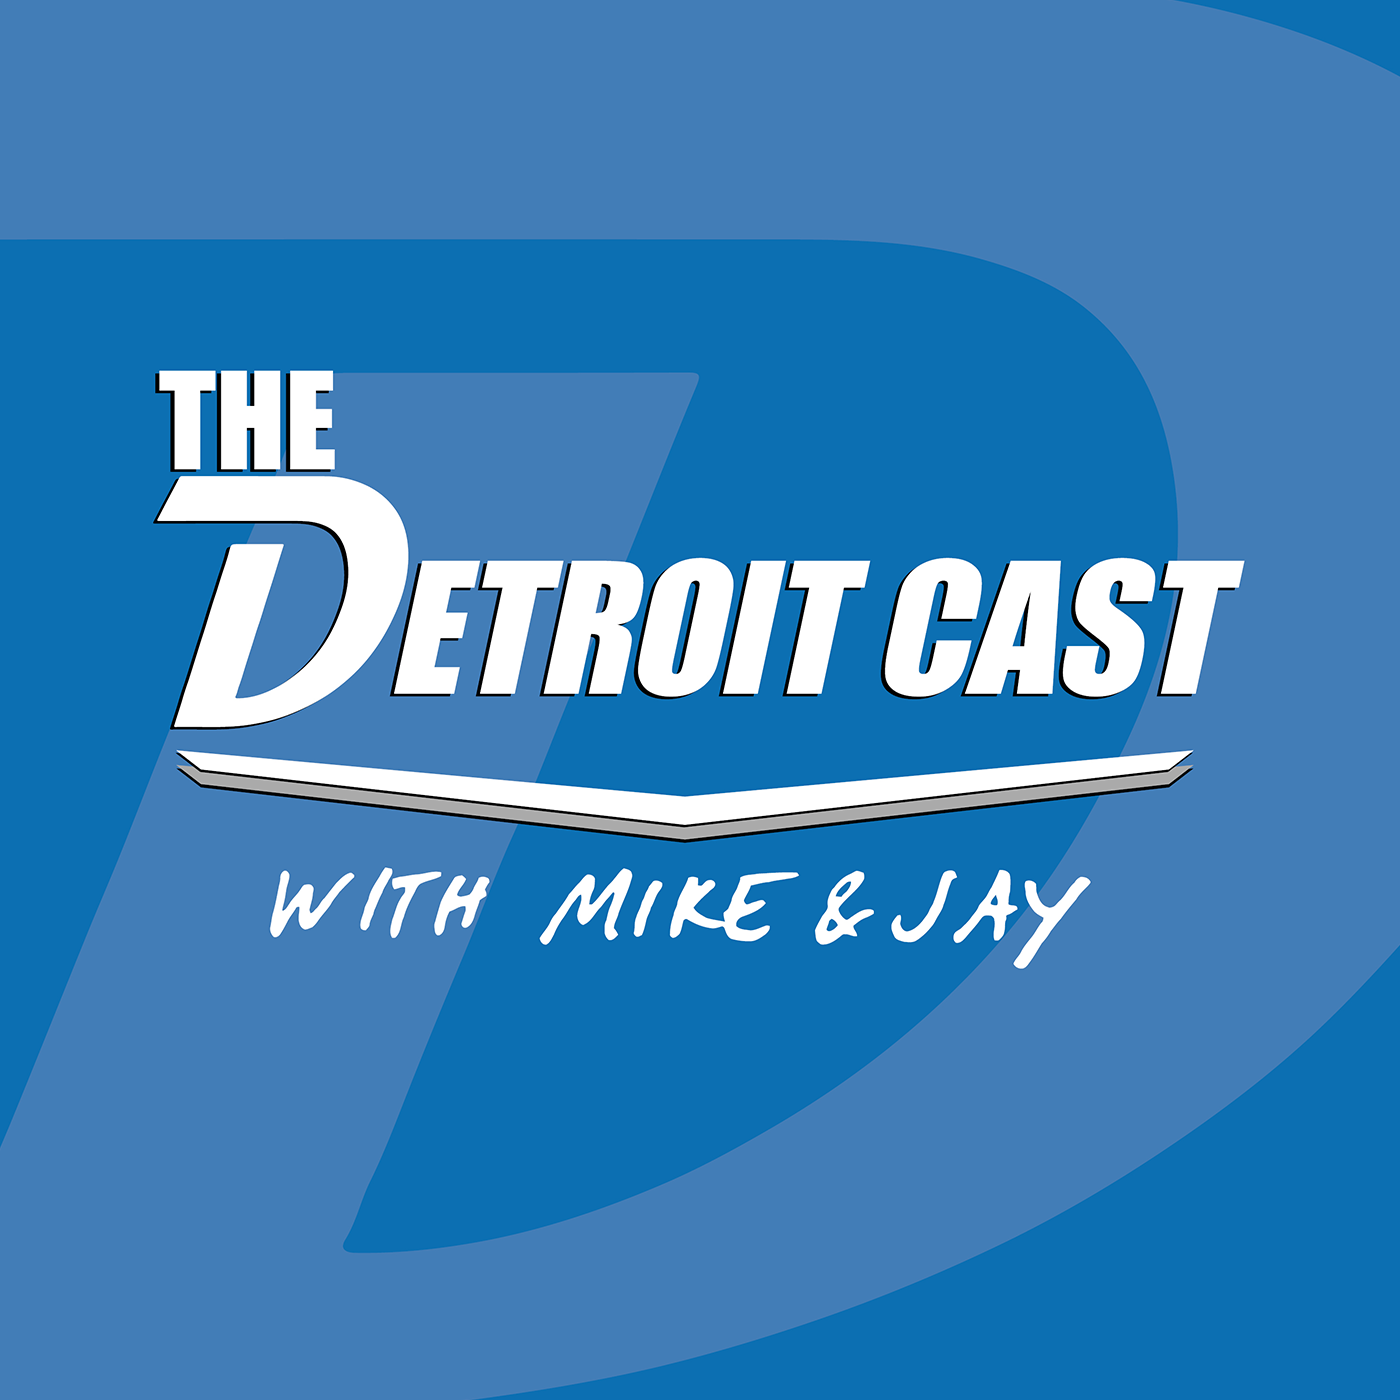 The Detroit Cast